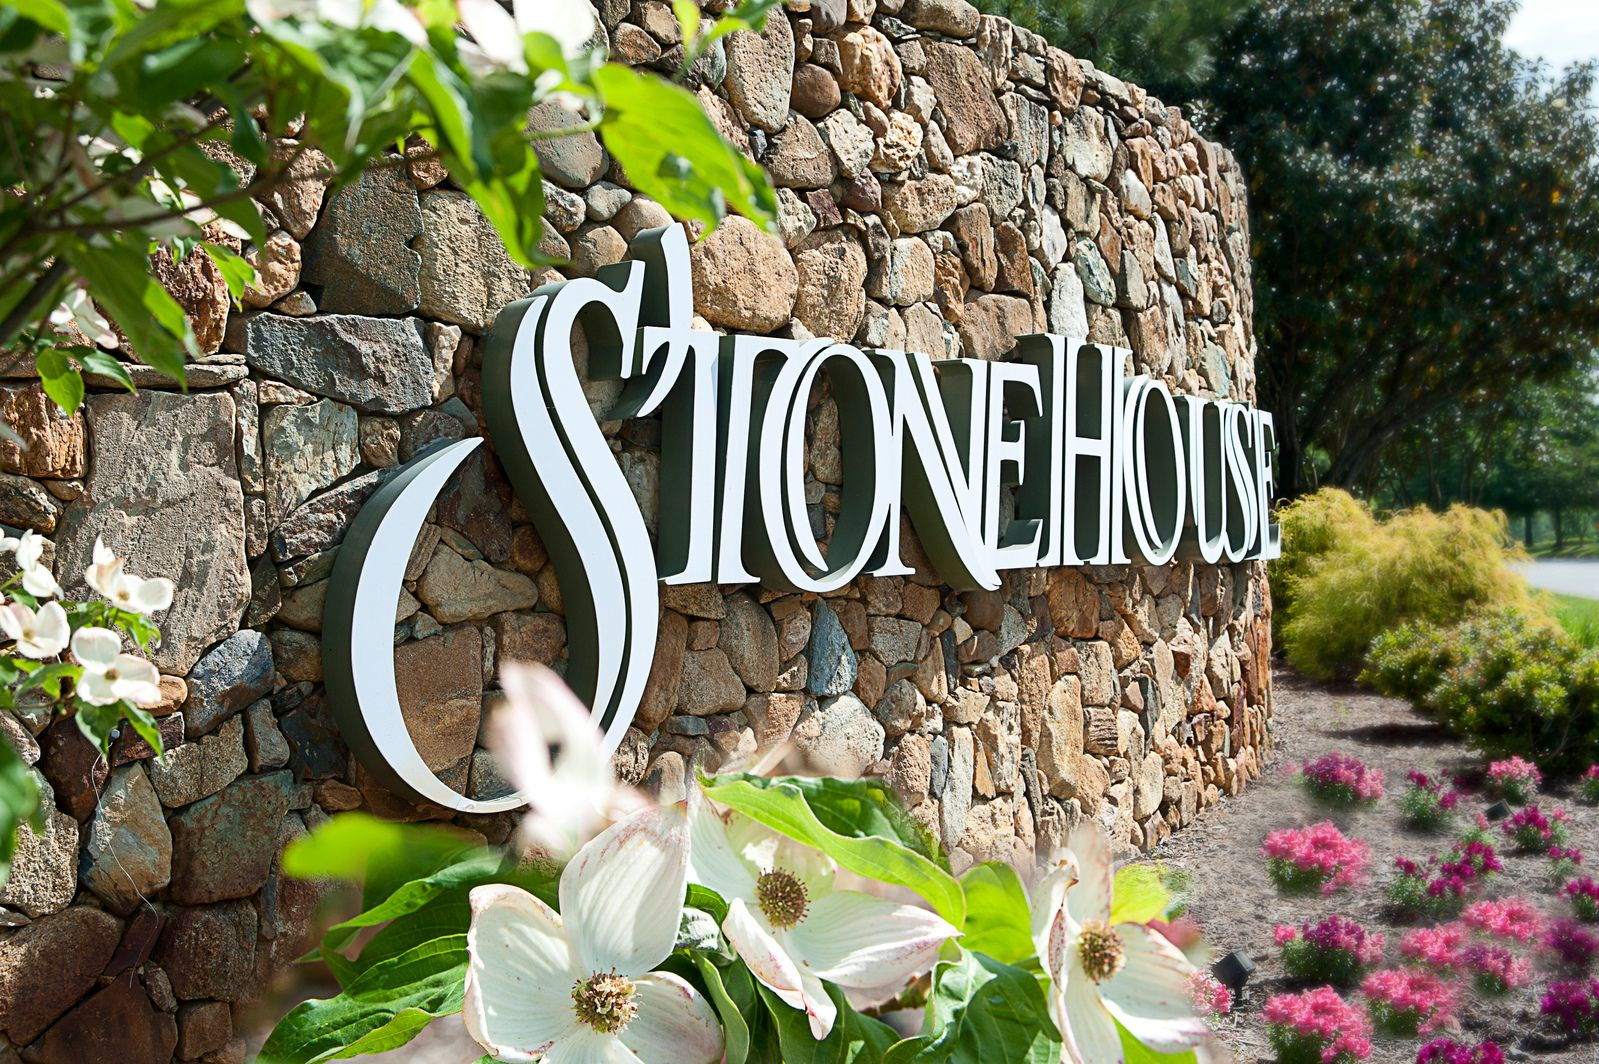 'Stonehouse' by Ryan Homes-RCL in Norfolk-Newport News